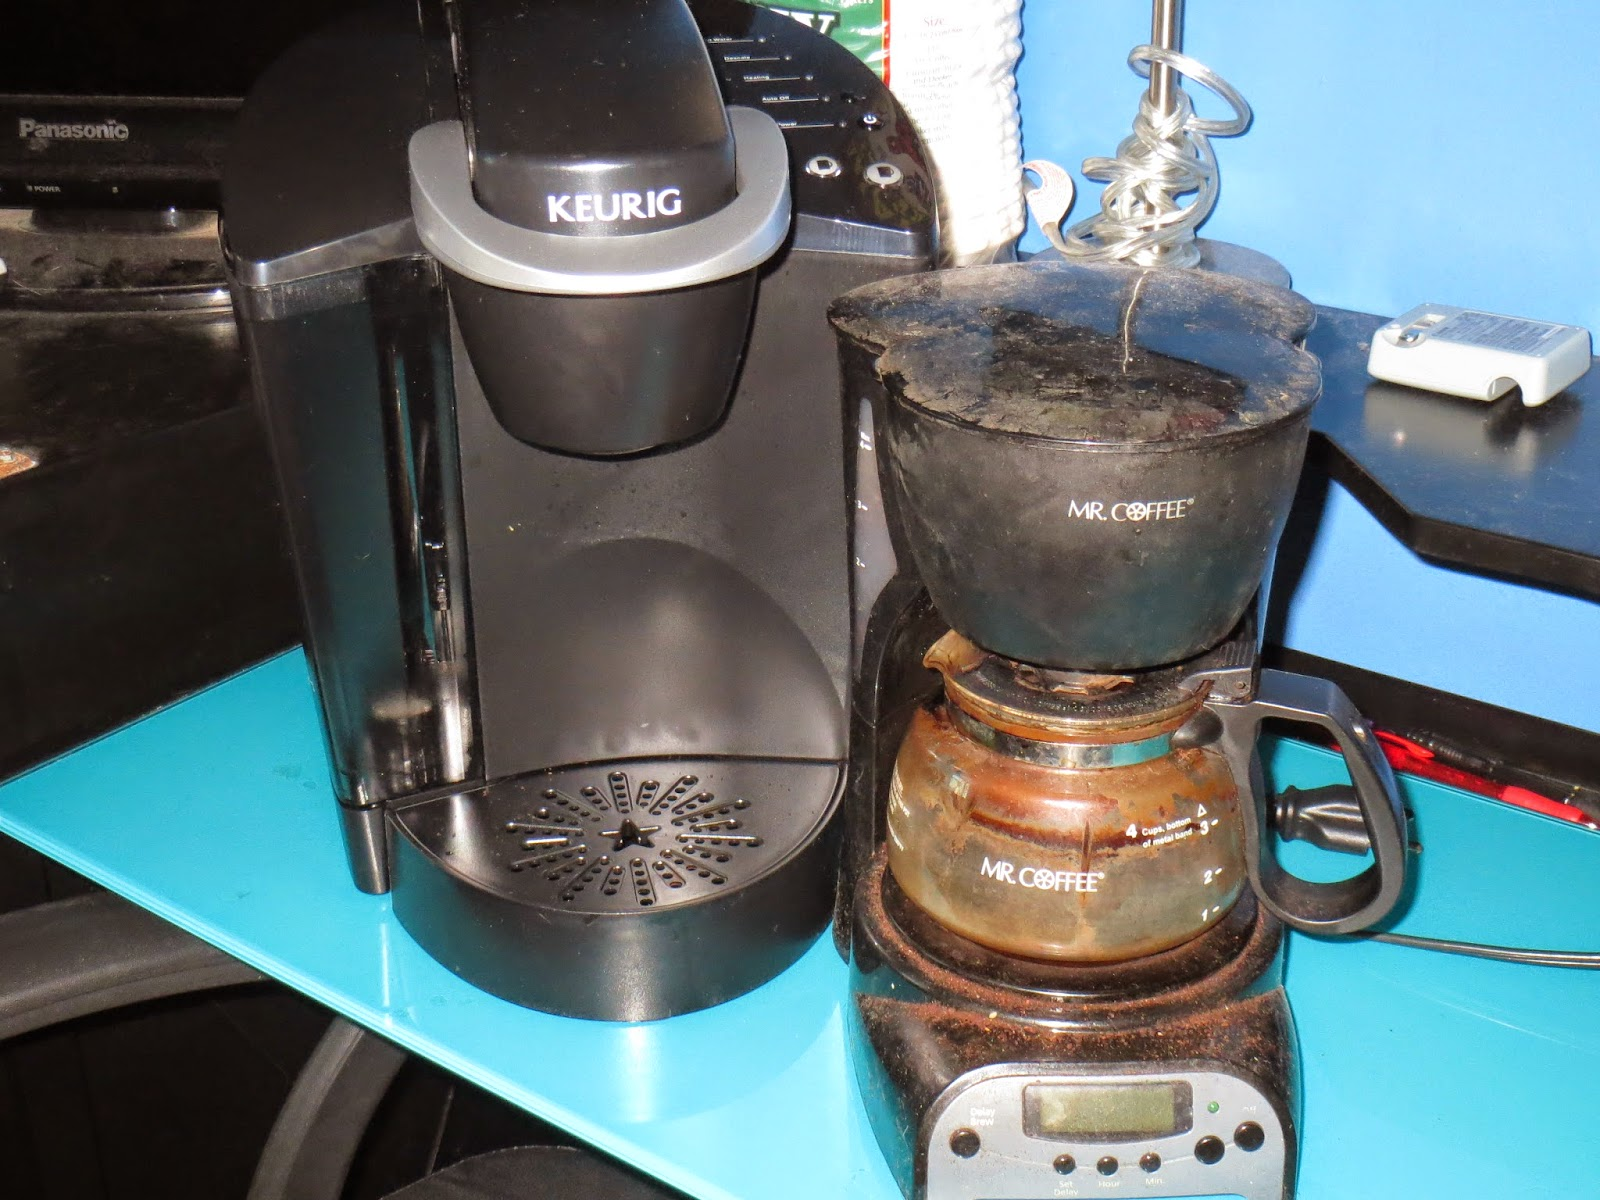 Keurig Coffee Maker Problems Lights Flashing : THE INTERNET IS IN AMERICA: The Problem with K-Cups...